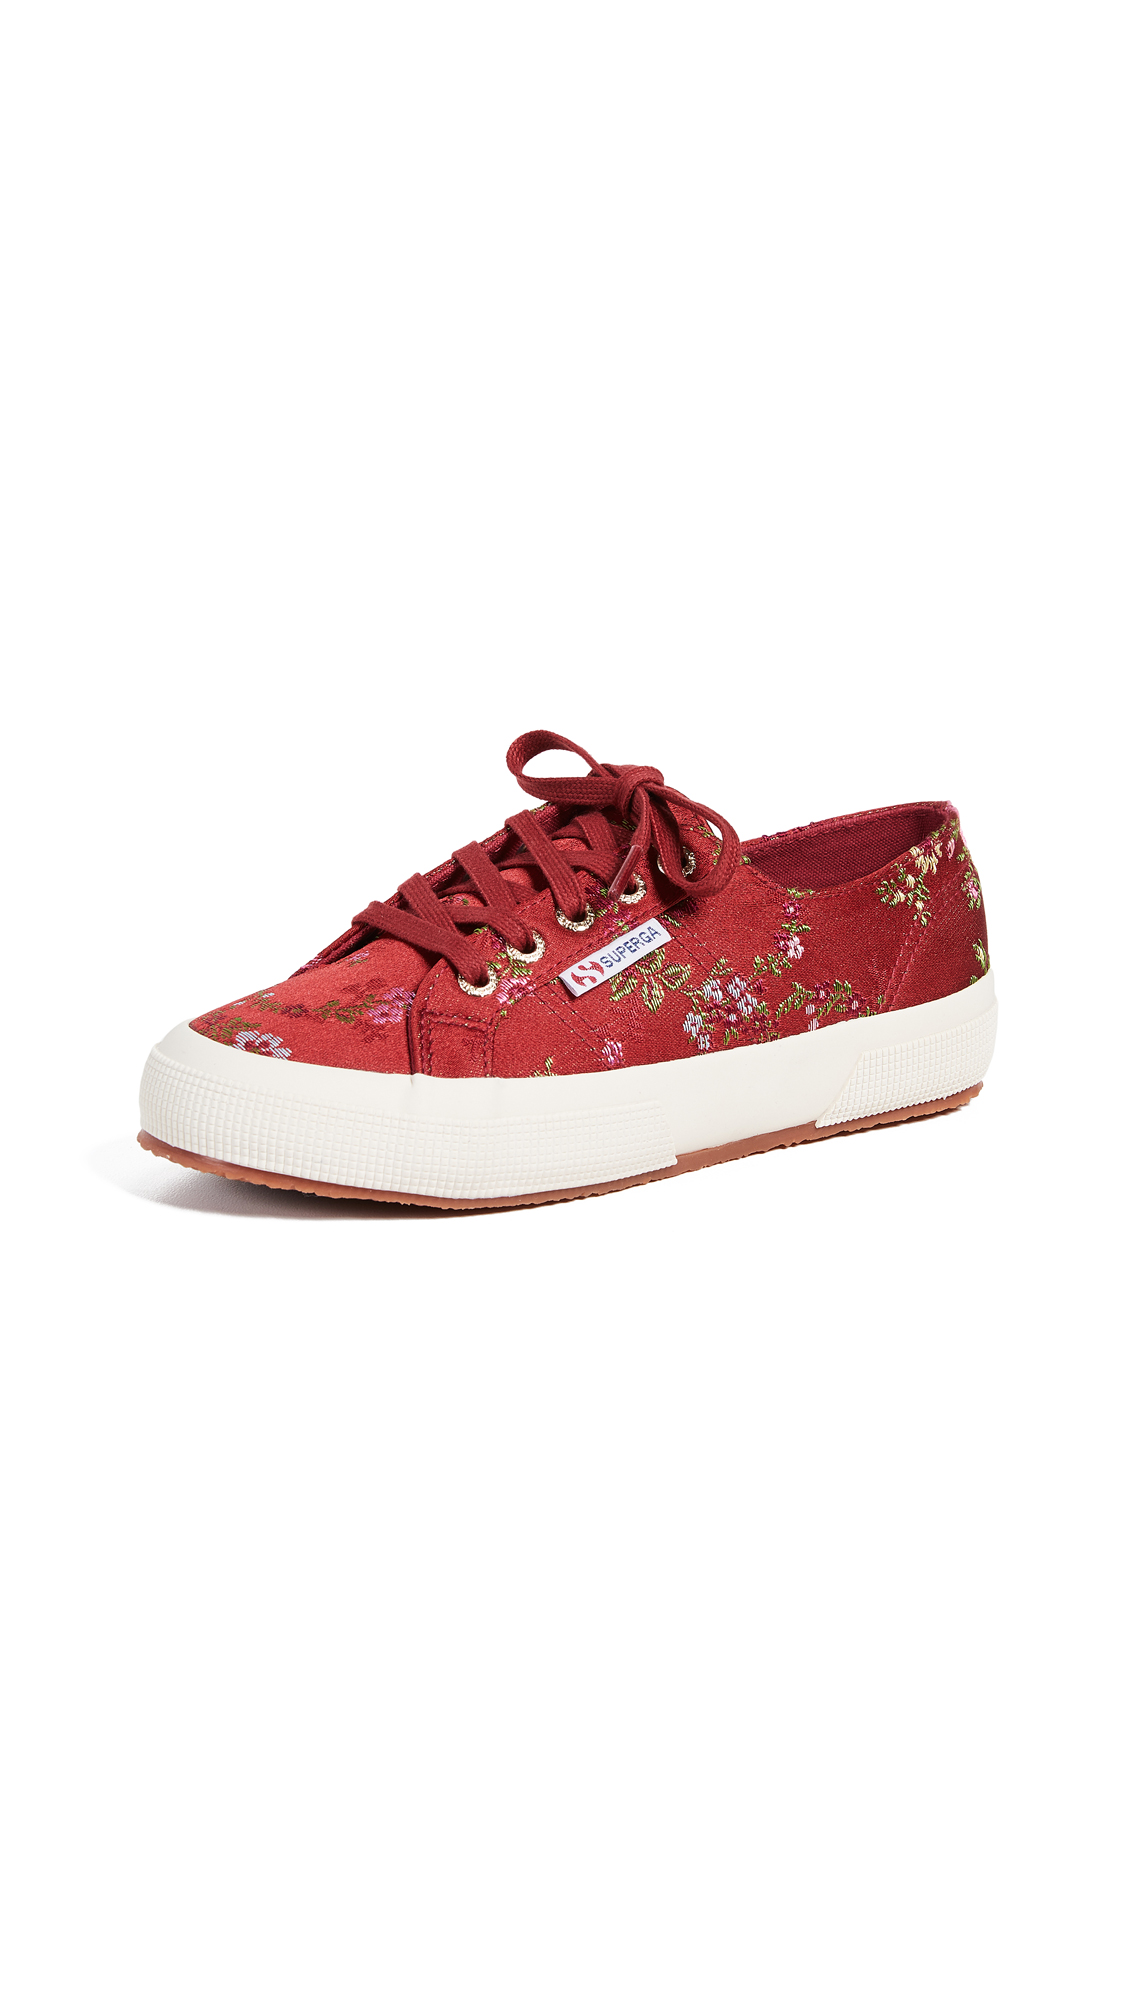 Superga 2750 Floral Sneakers - Bordeaux